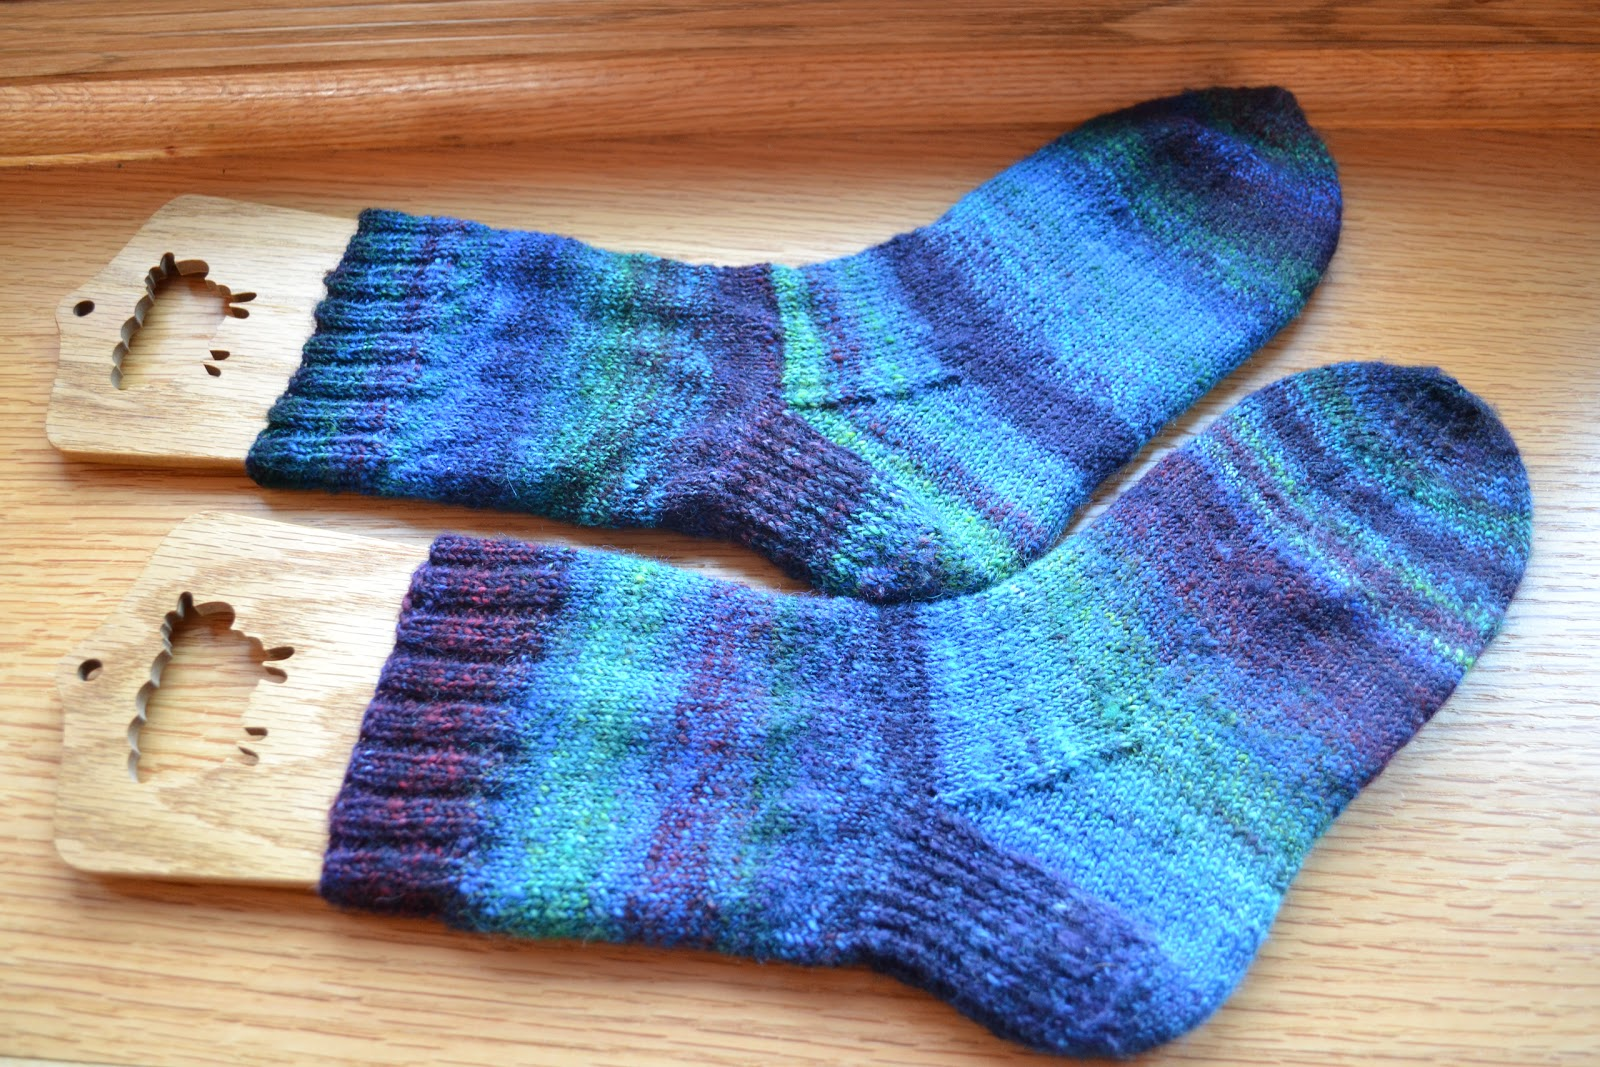 How to knit socks knitting socks on two needles 1